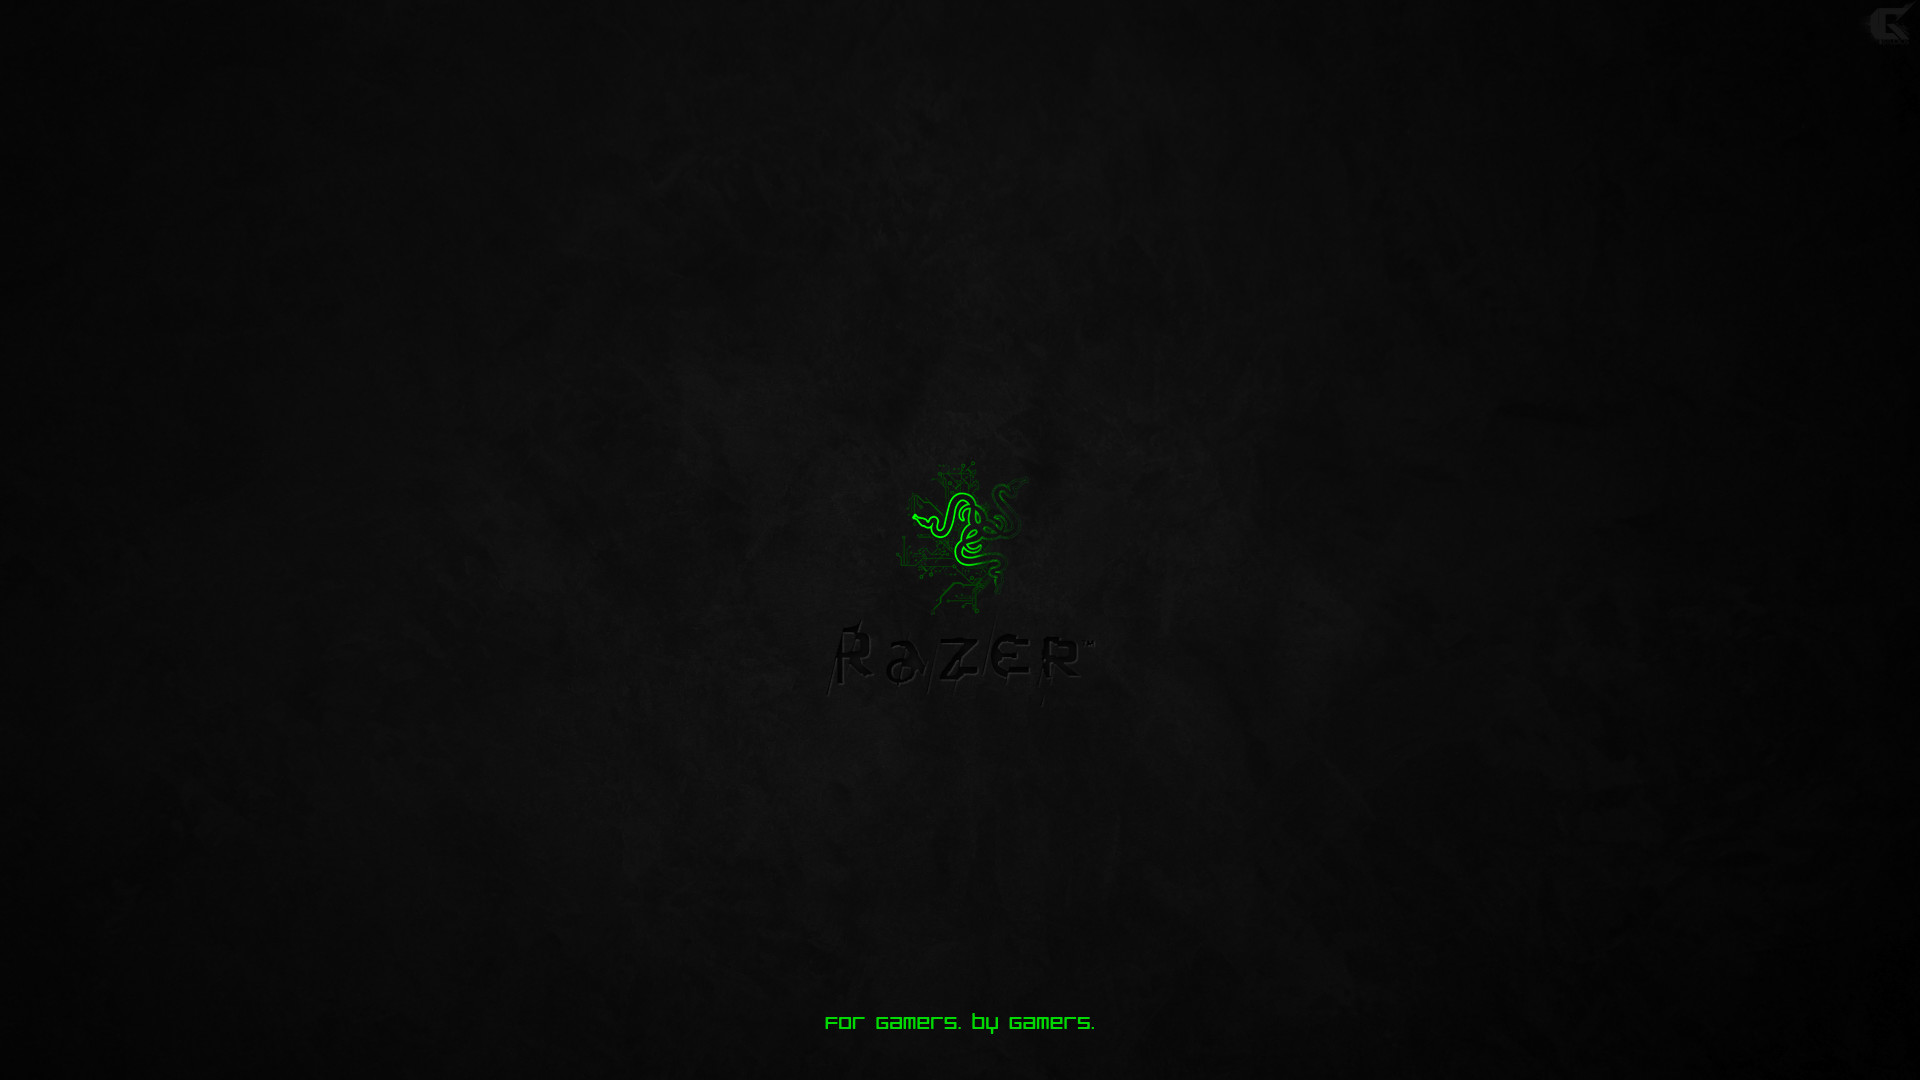 1920x1080 1920x1080 Wallpaper razer, logo, symbol, shape